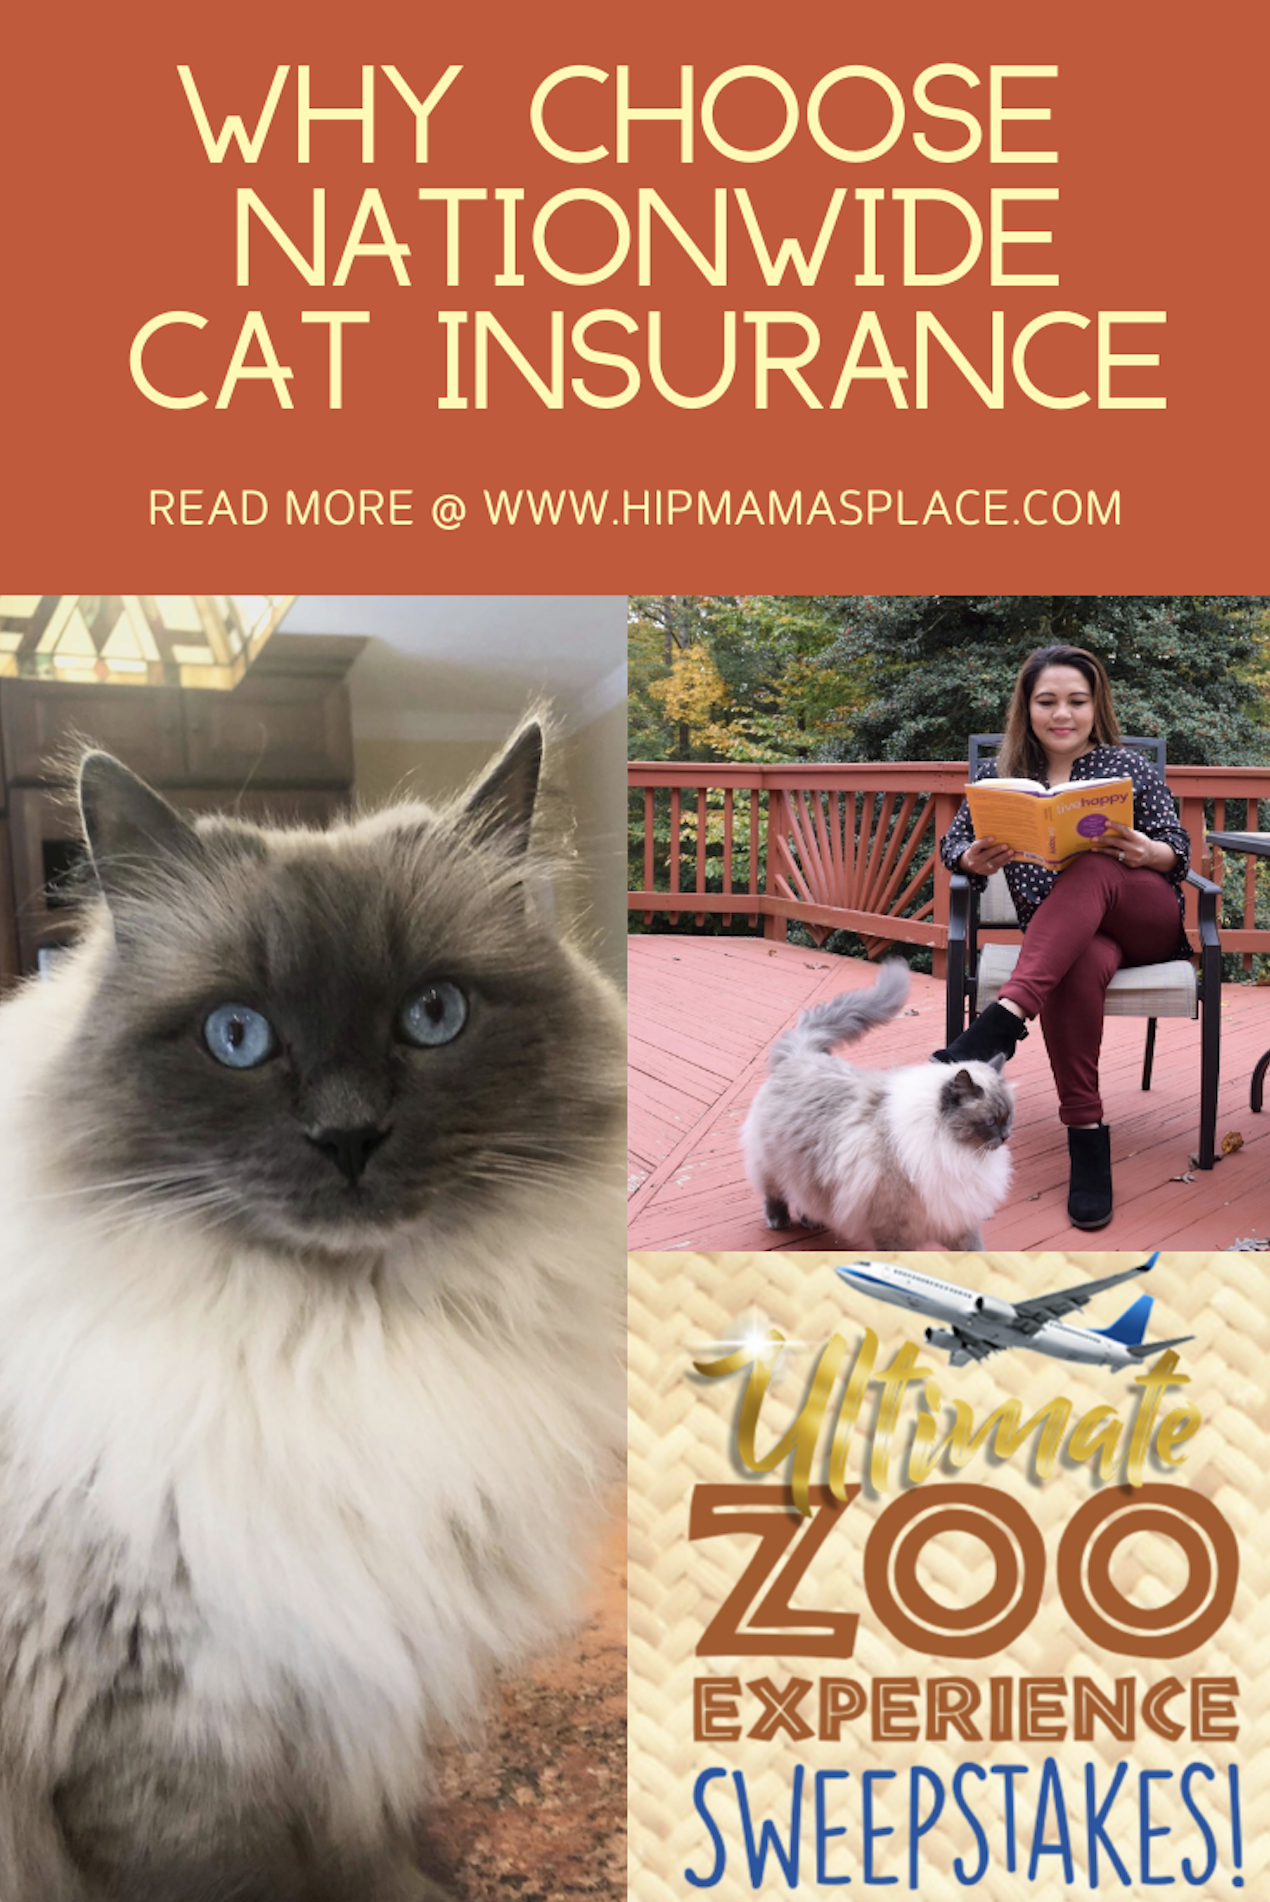 It's not easy to think about it, but the truth is that our pets could get hurt or sick too. #AD Read about Nationwide and their cat insurance on the blog today! Plus, get a chance to win fantastic prizes during the Ultimate Zoo Experience sweepstakes! #JungleCats2019 #petinsurance #catinsurance #catlovers #furbaby #cutestcat